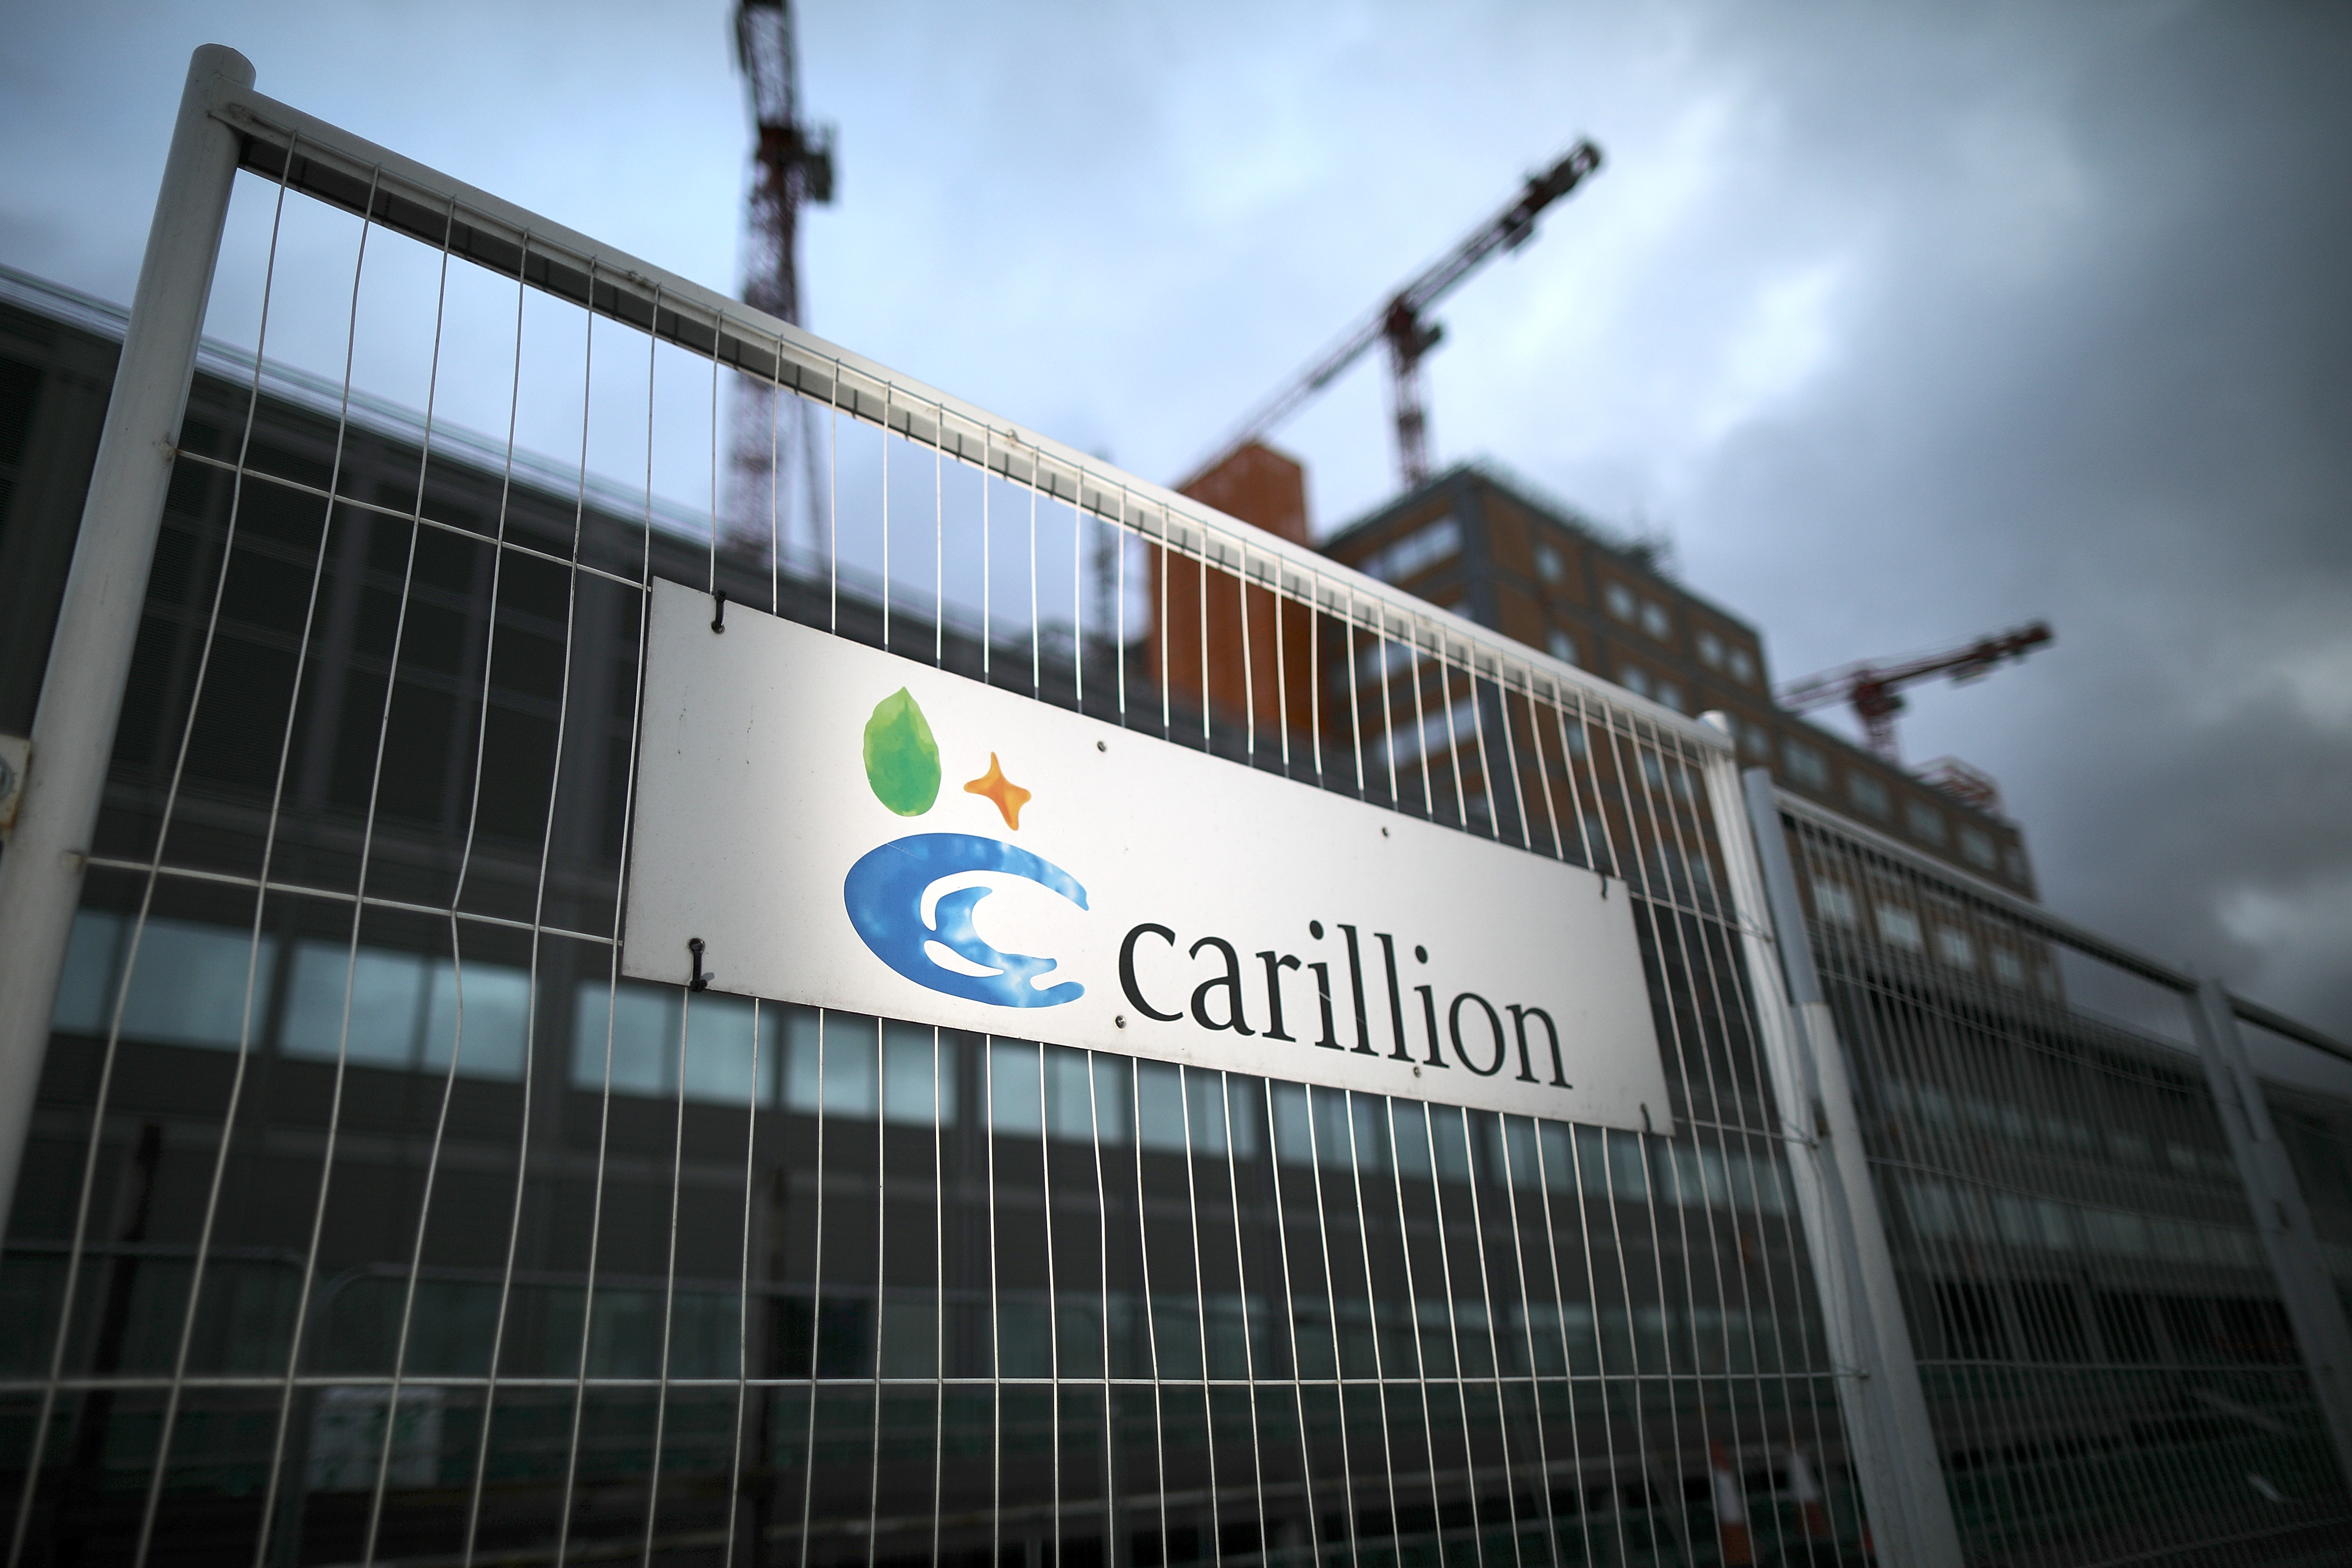 Carillion saga continues: Watchdog probes Whitehall salvage attempts on unfinished hospitals